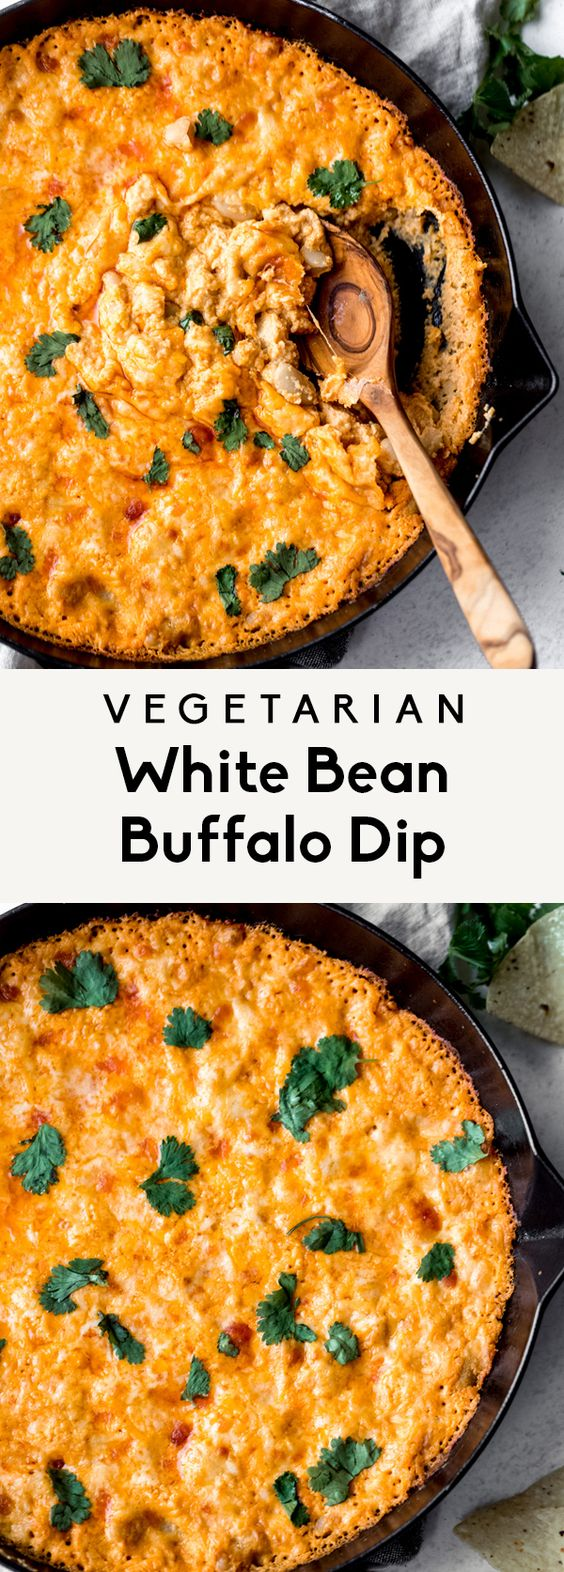 Vegetarian Three Cheese White Bean Buffalo Dip | Ambitious Kitchen